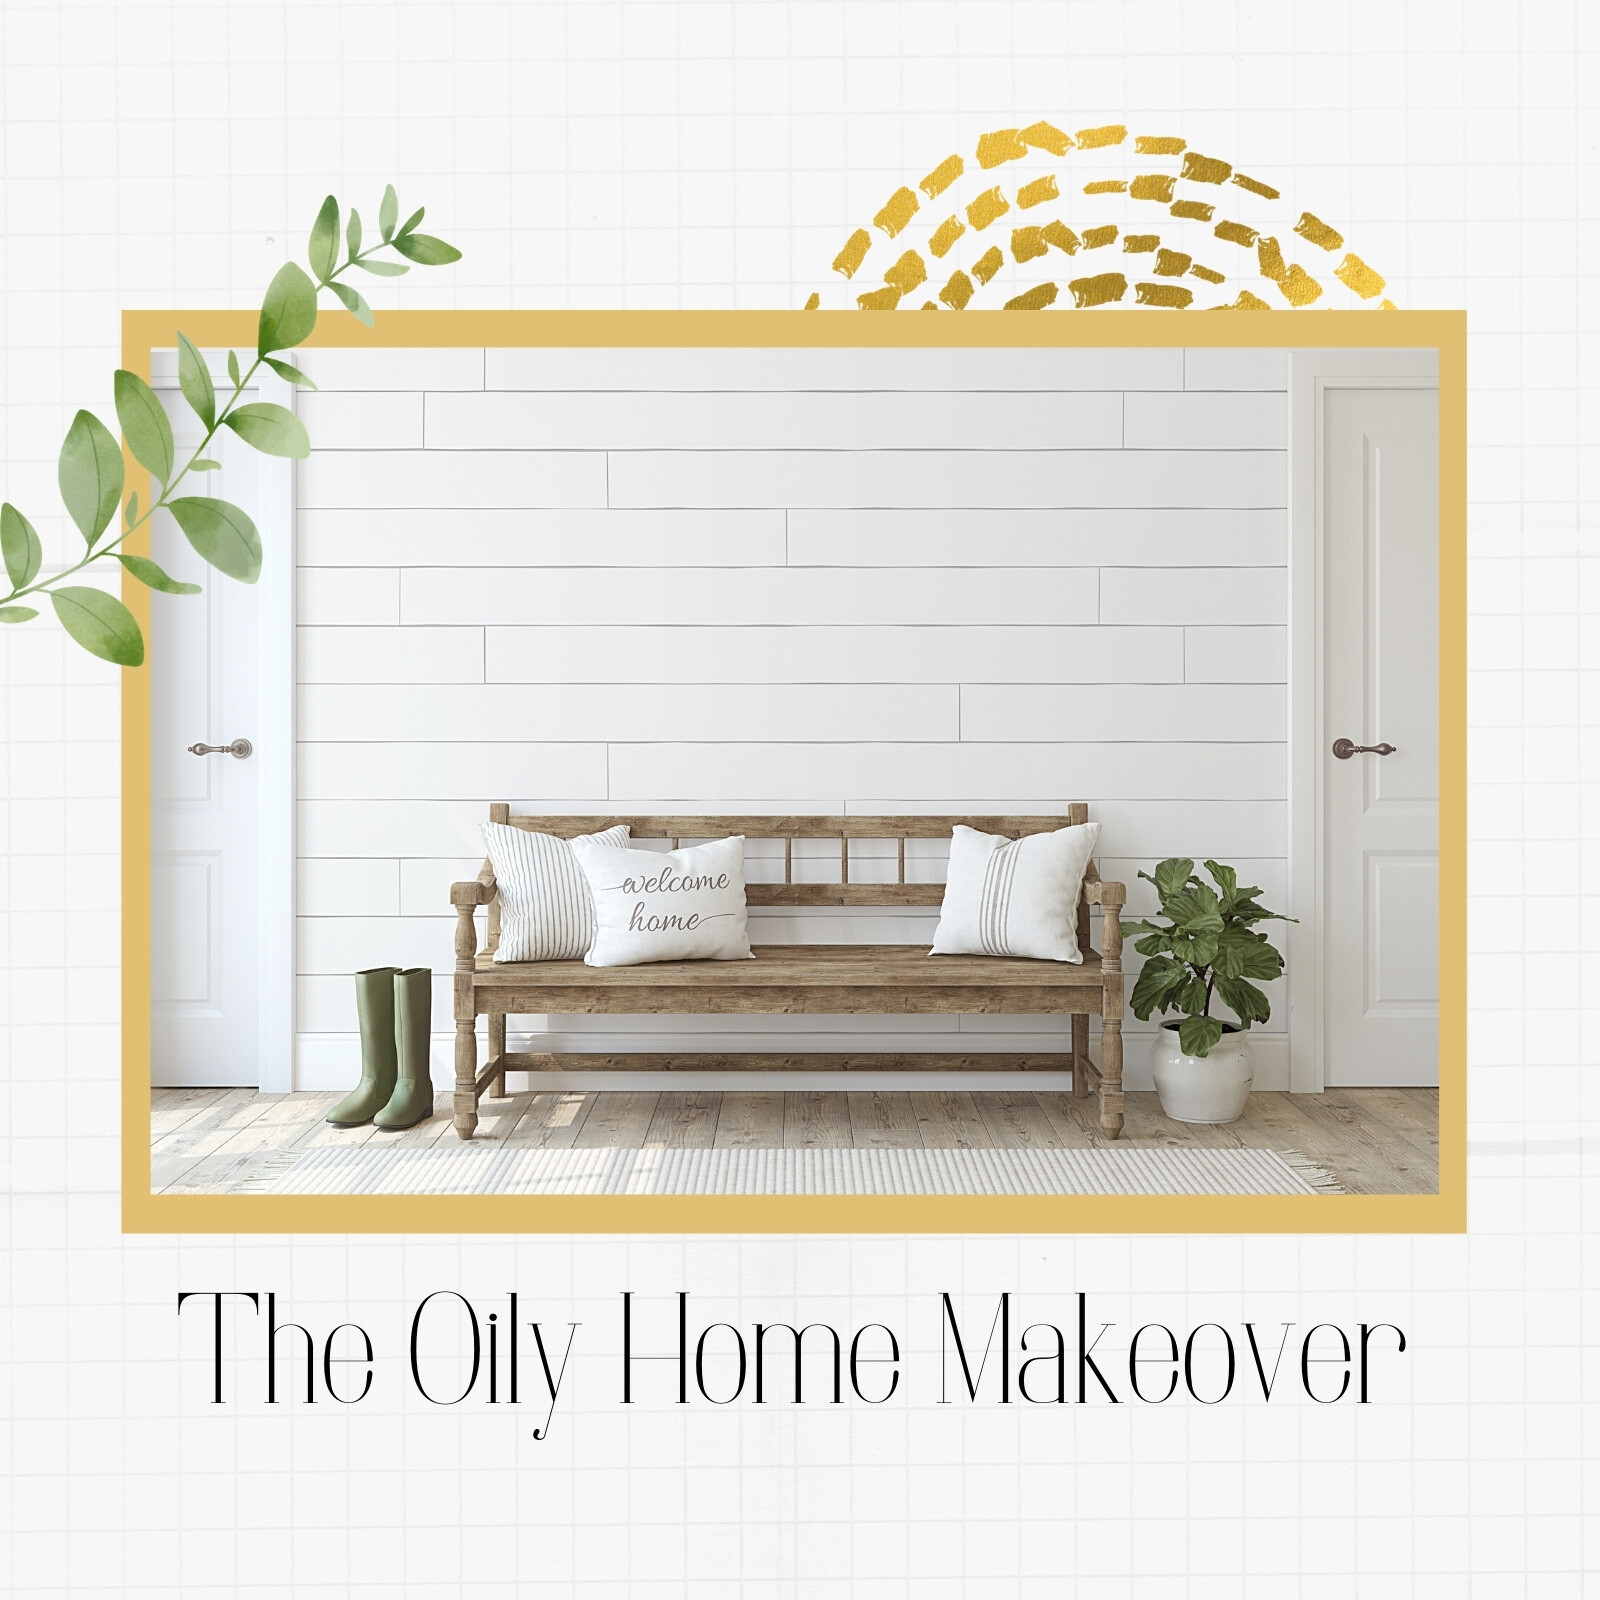 The Oily Home Makeover